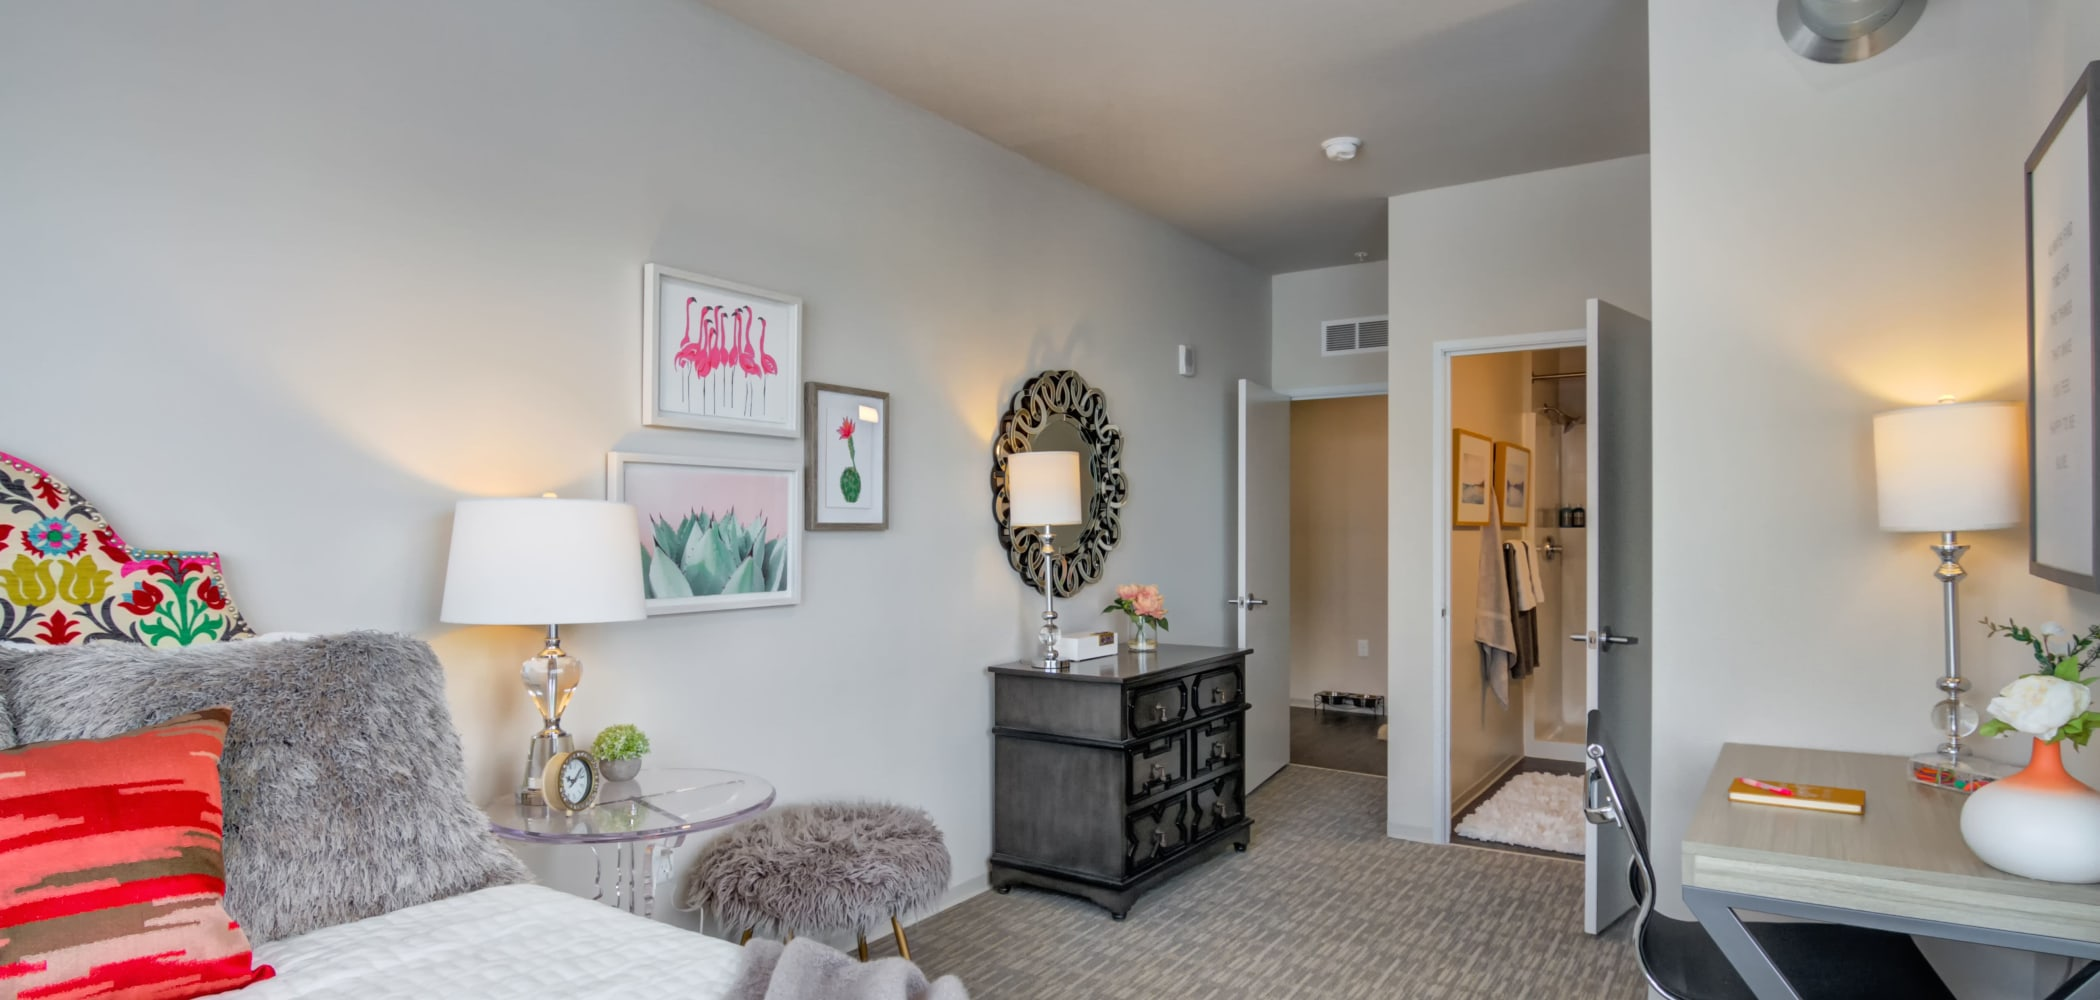 Expansive bedroom space at The Link Minneapolis in Minneapolis, Minnesota